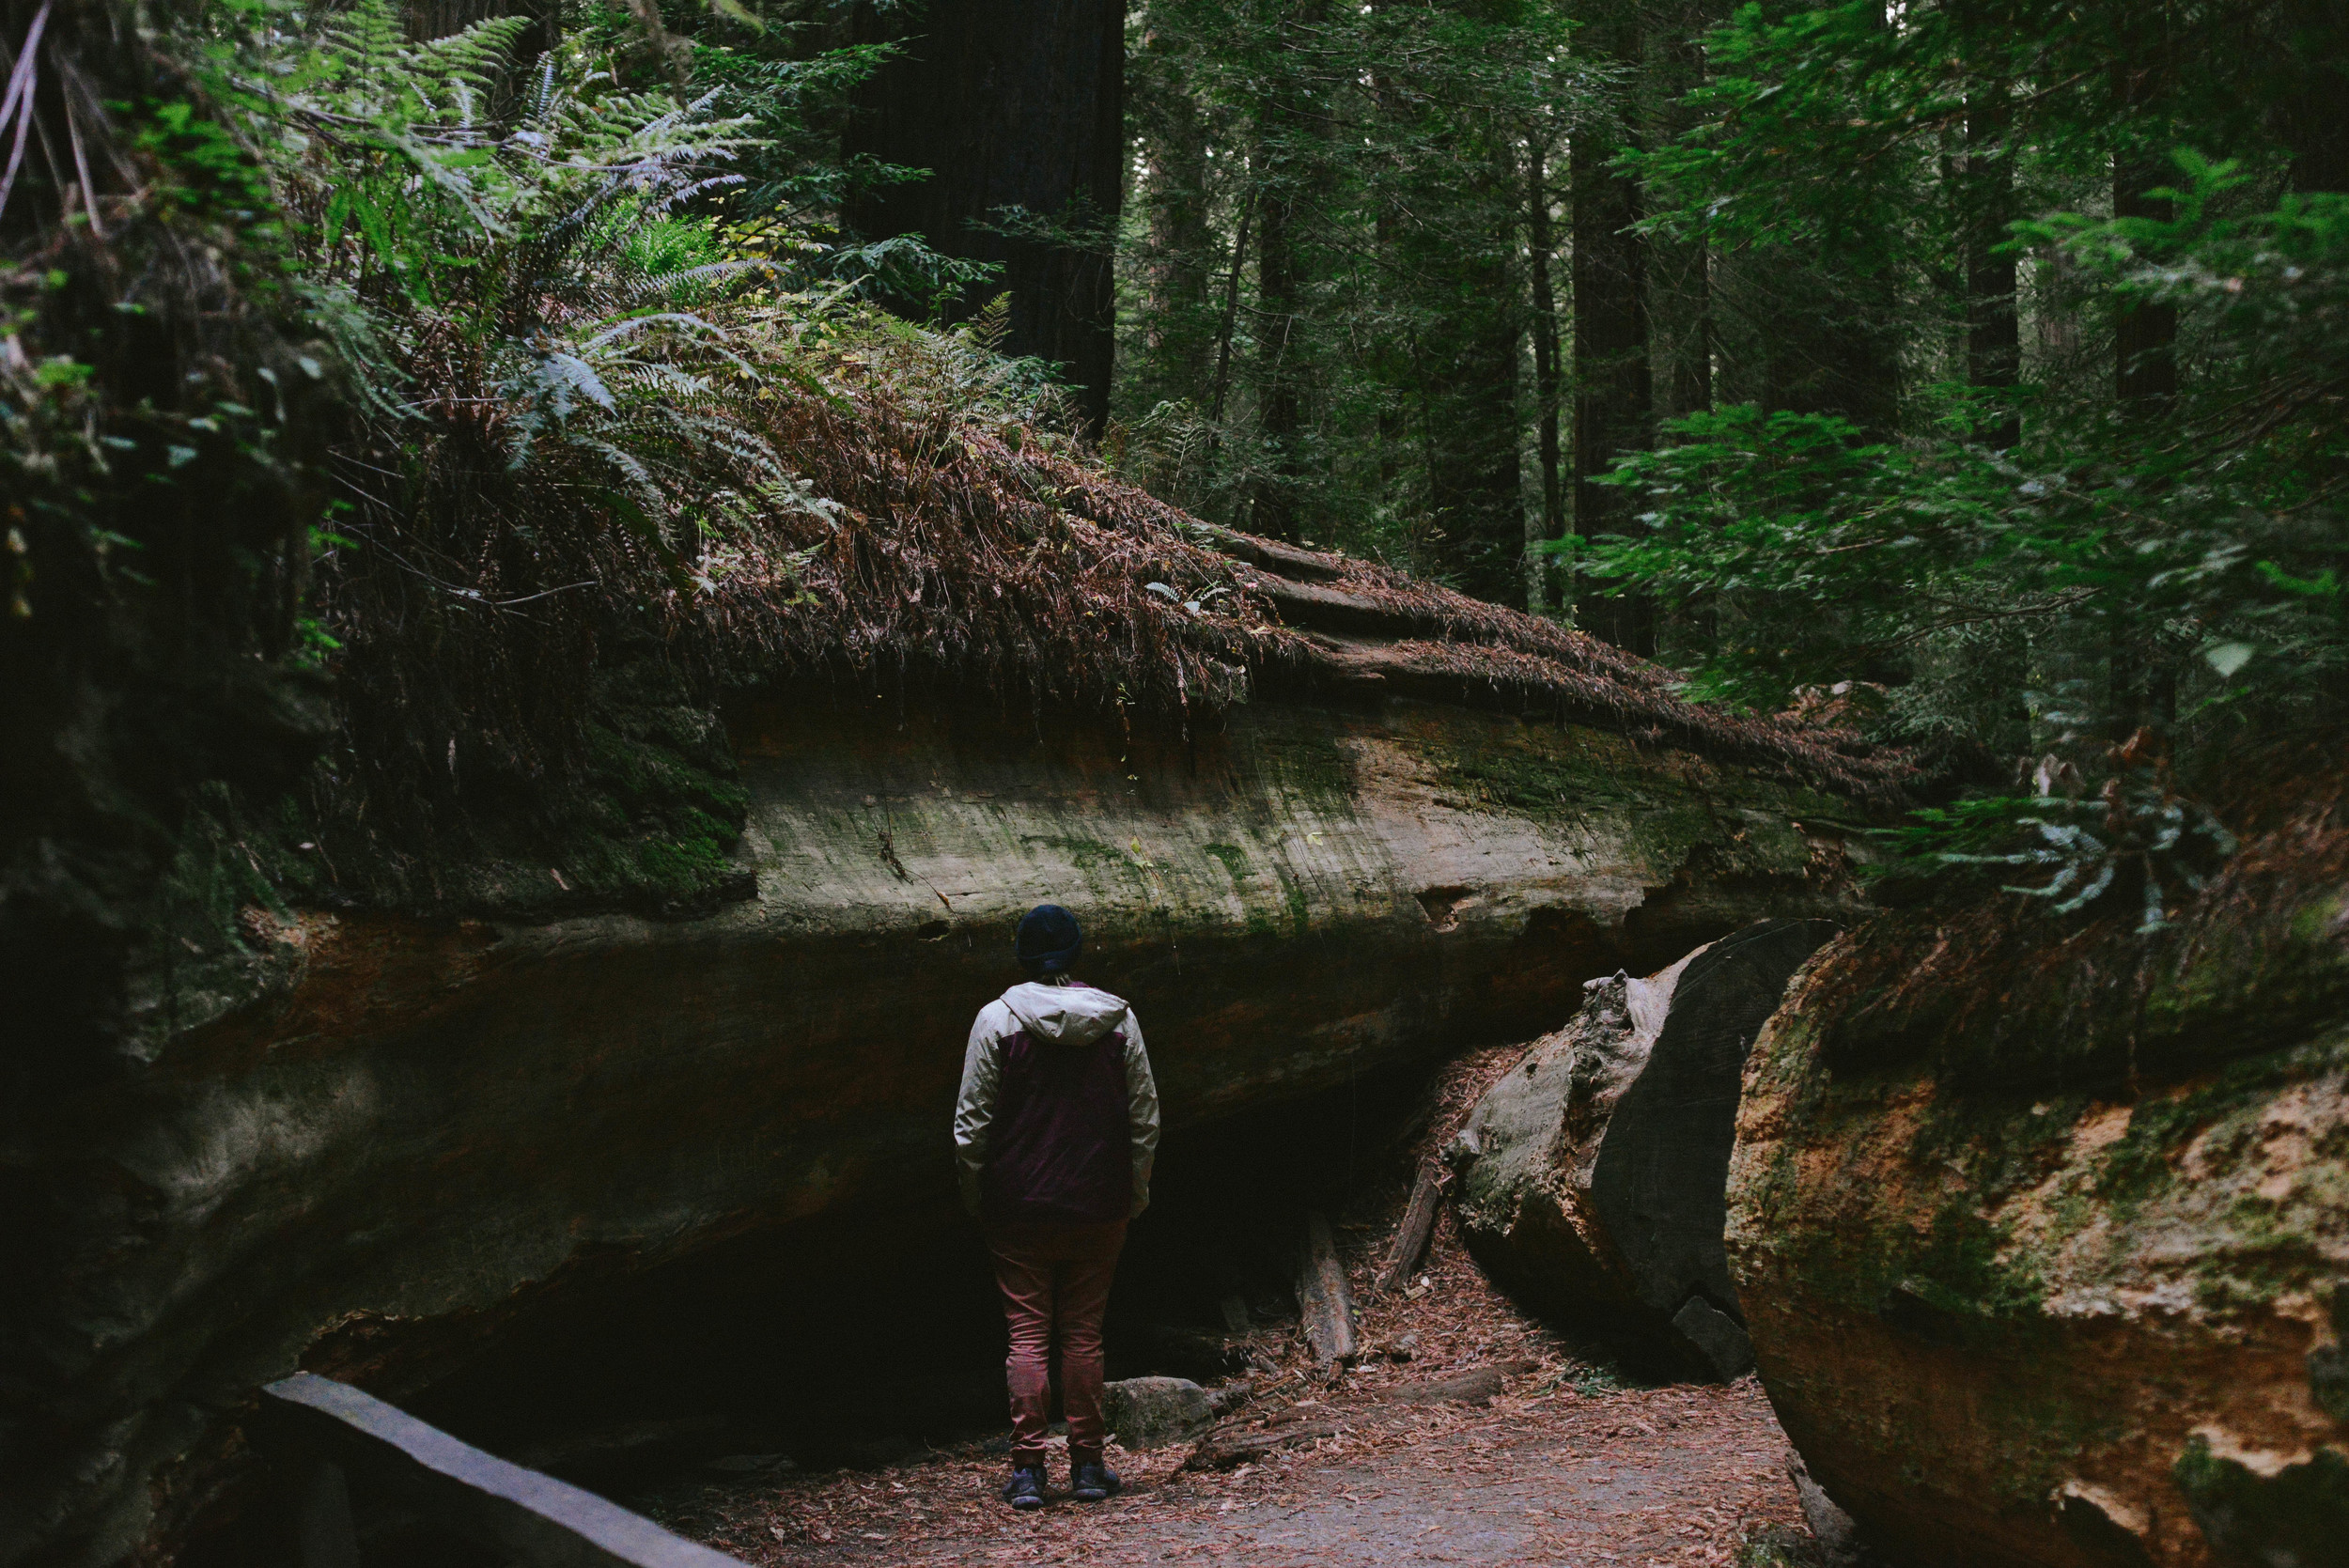 A fallen giant redwood.